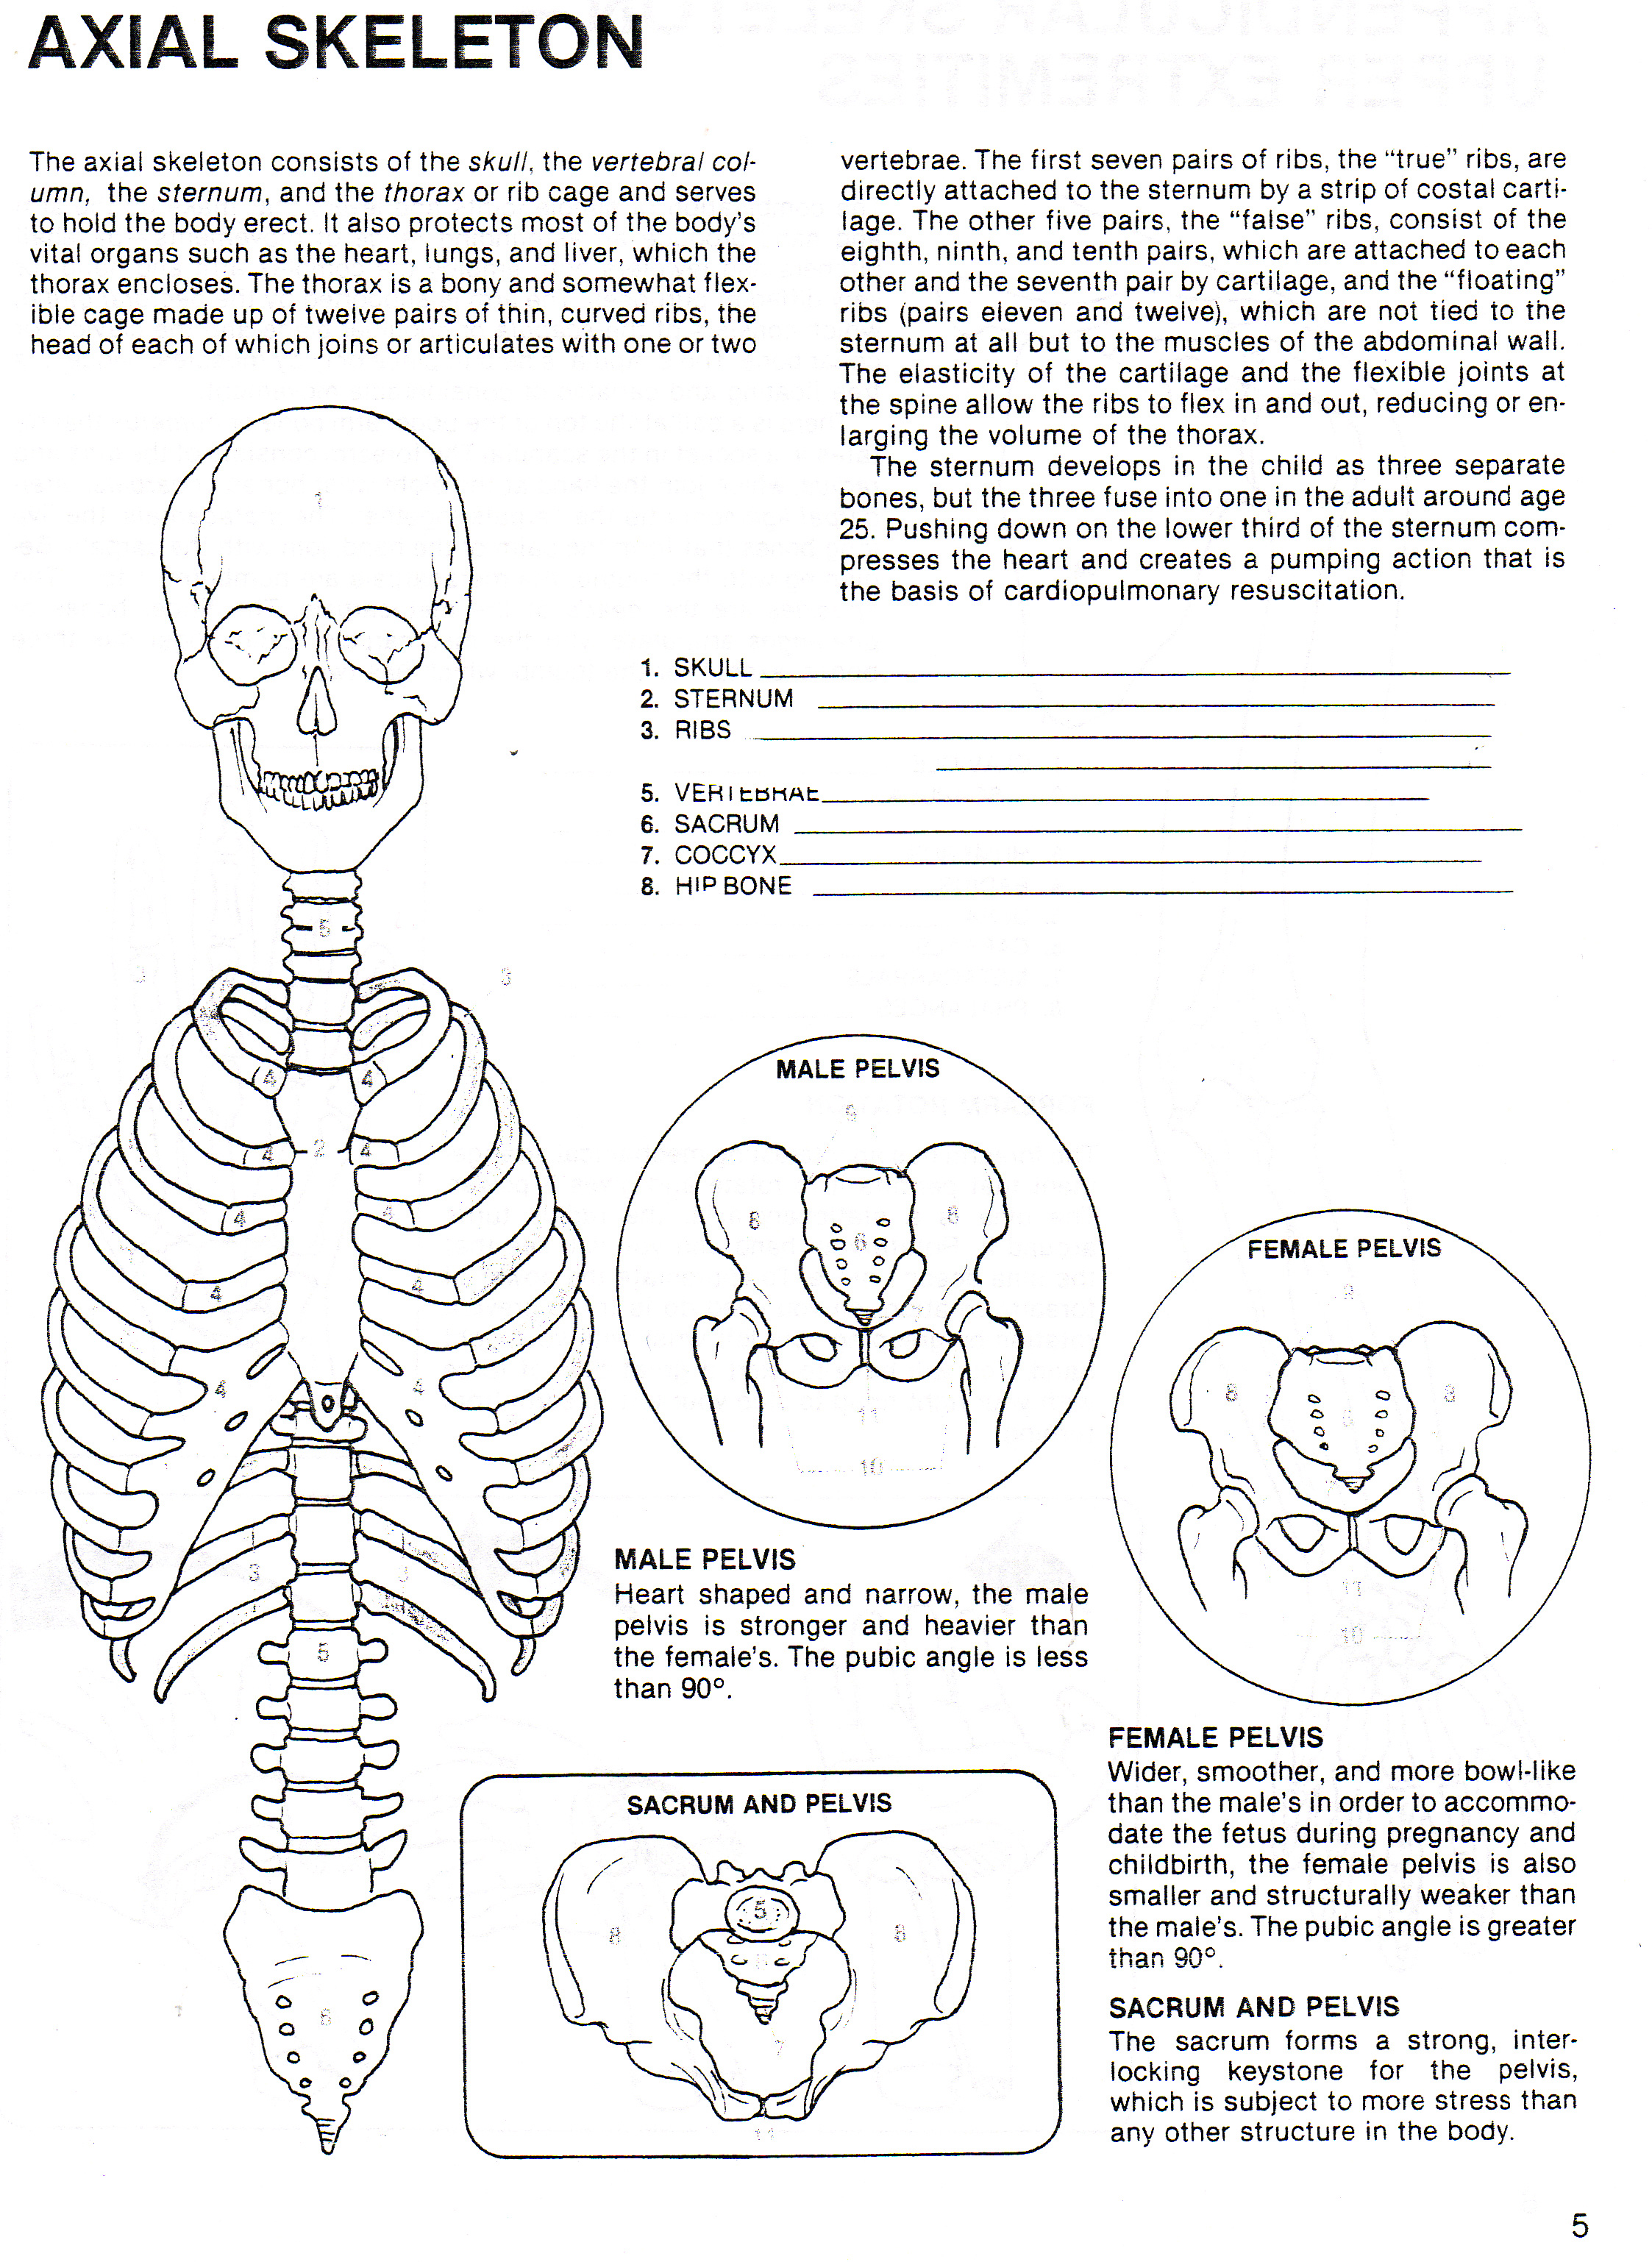 Axial Skeleton Coloring Sheet